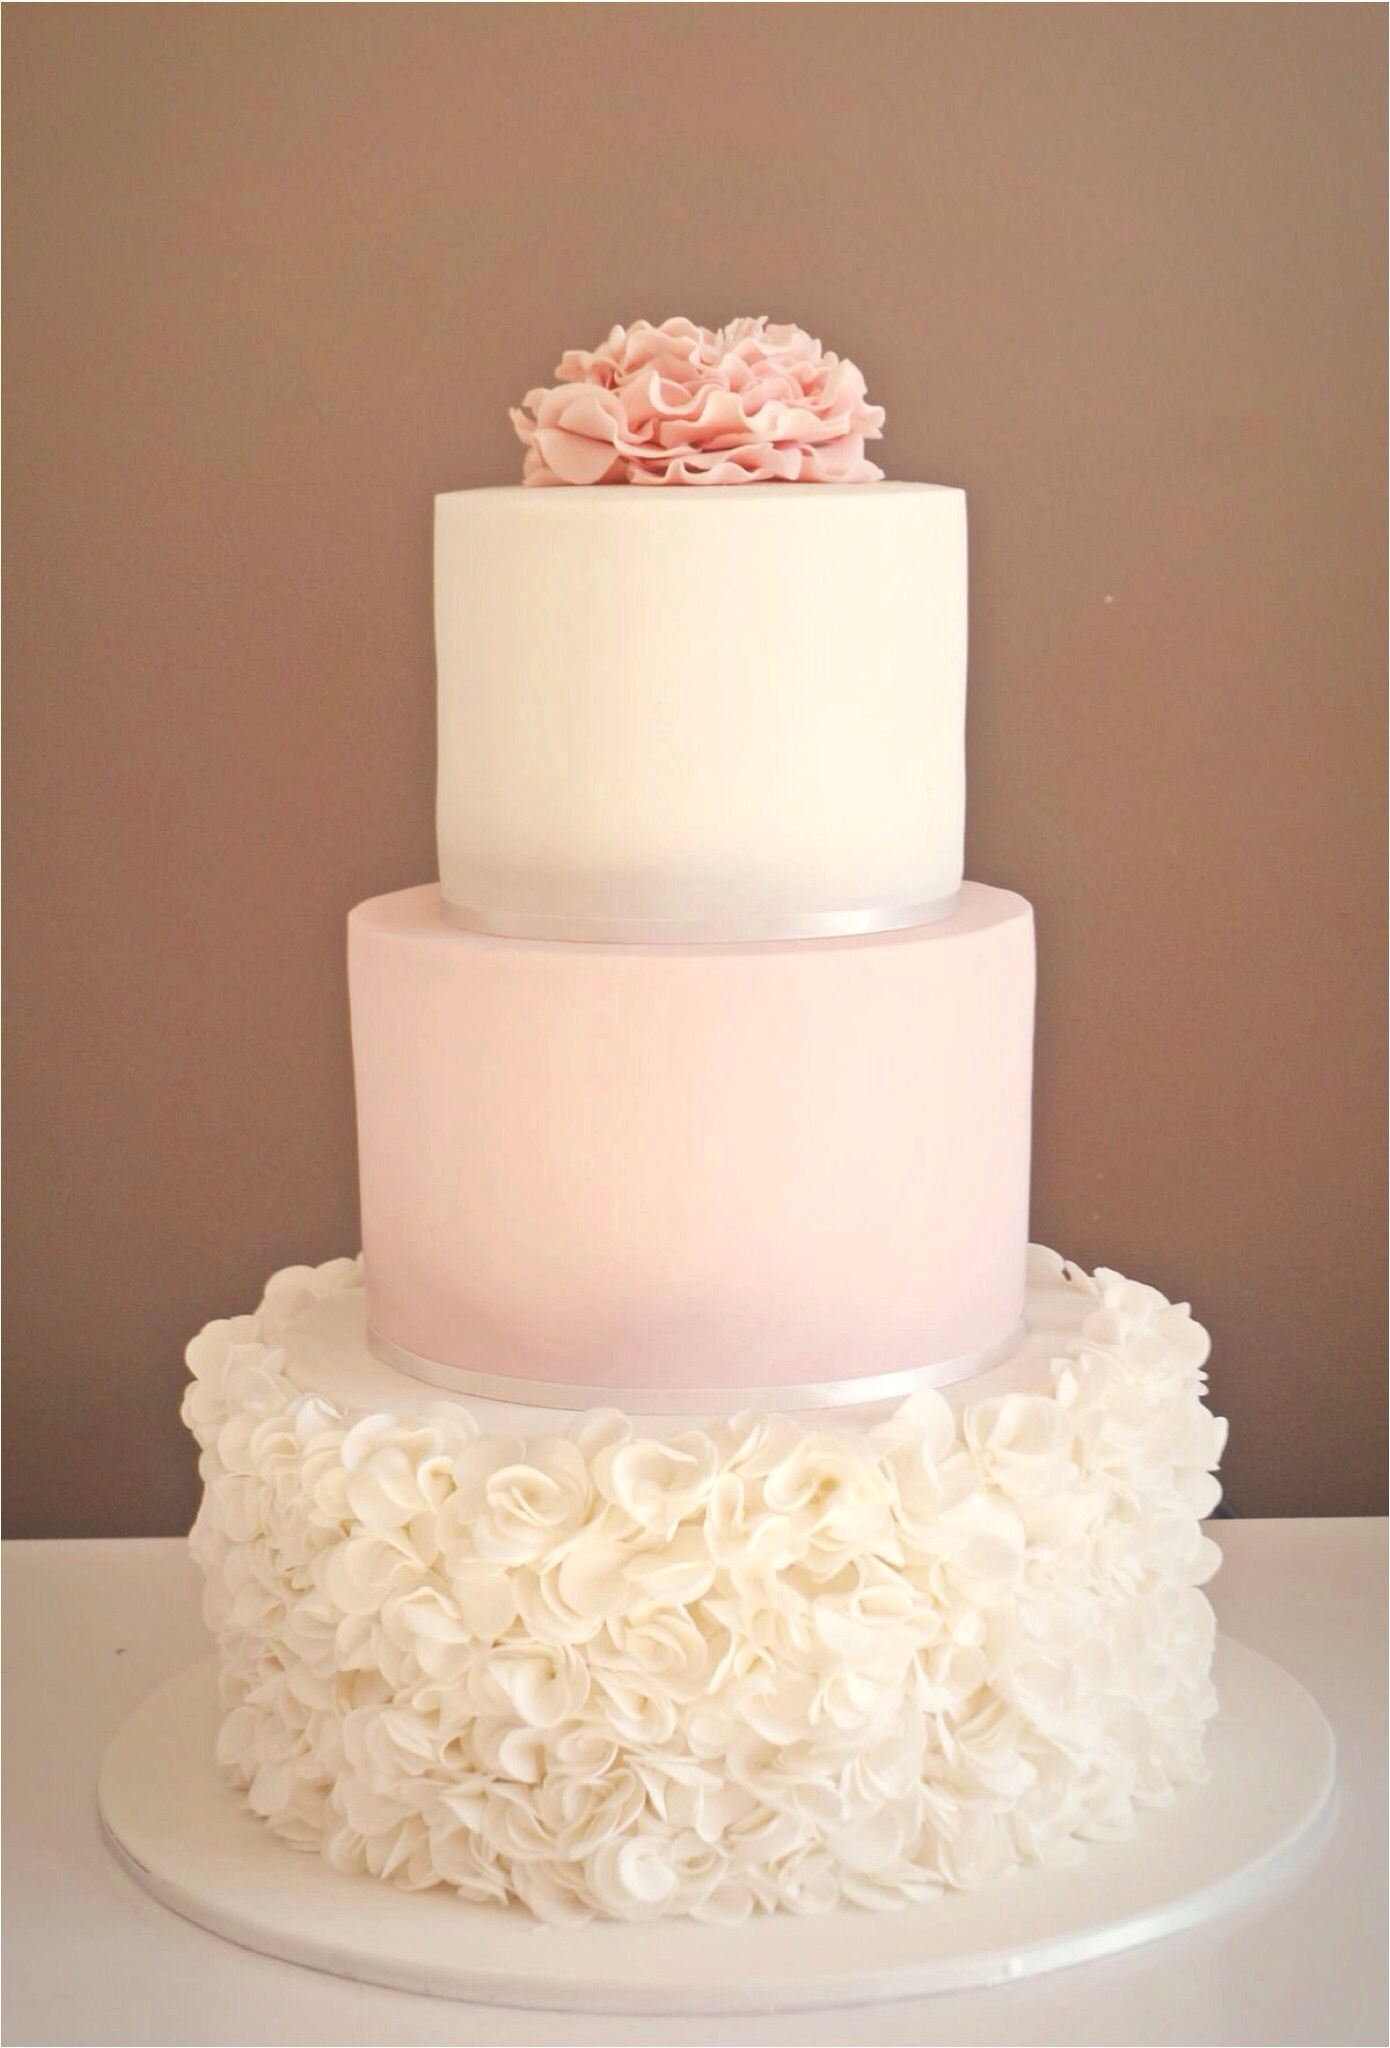 Fun 3 Tier Wedding Cake Cakey Cakeness Pinterest